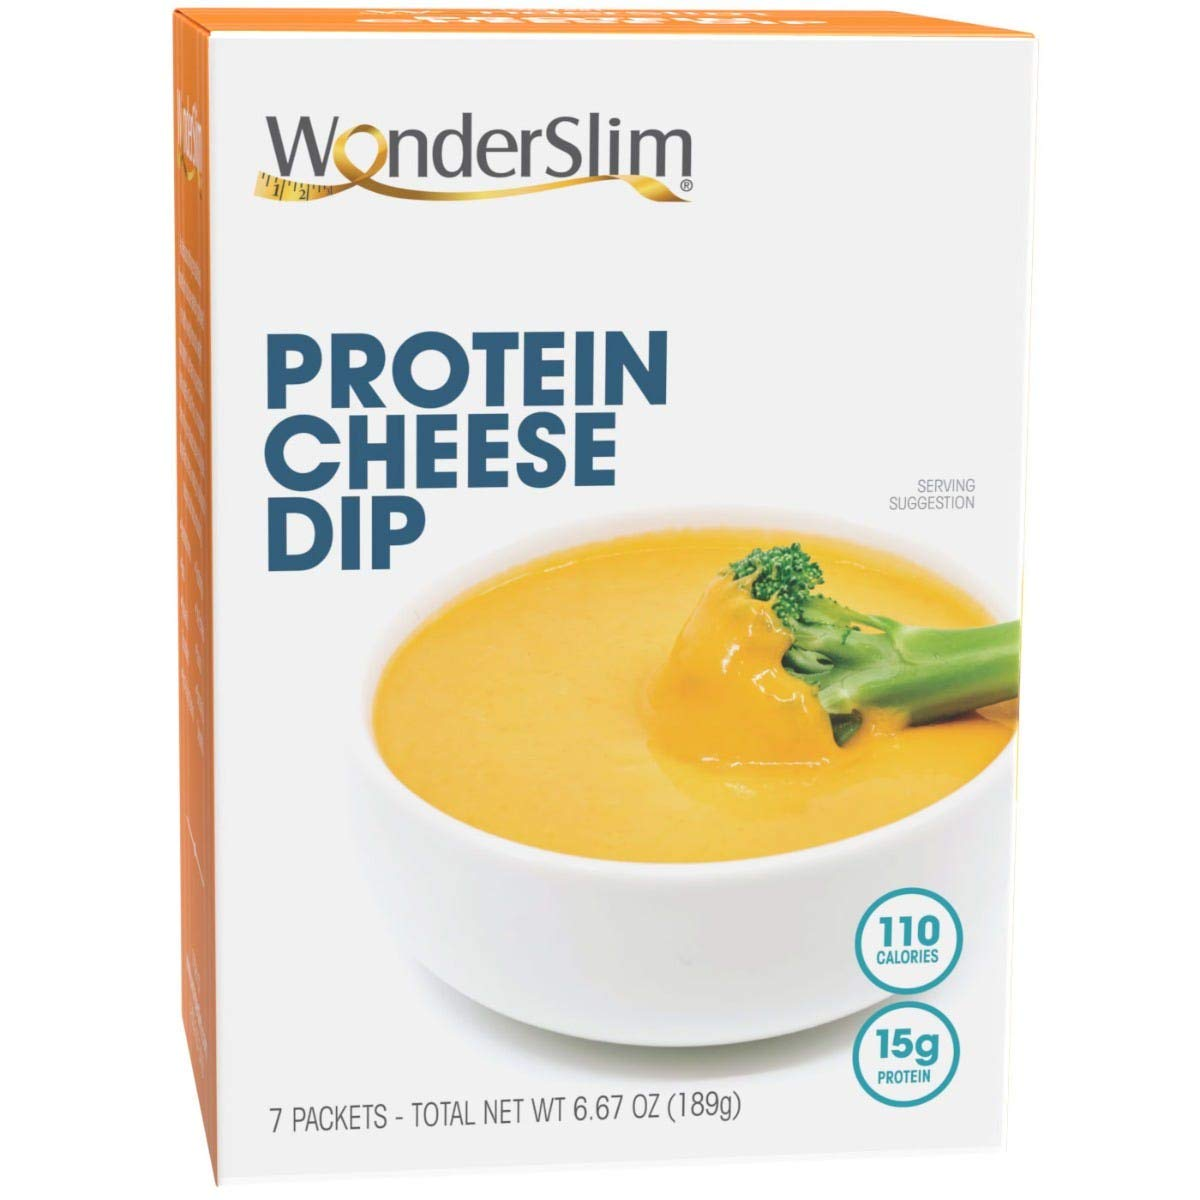 WonderSlim Protein Cheddar Cheese Dip, Low Calorie Snack, 15g Casein Protein, Keto Friendly, Easy To Prepare Soup, Dip or Cheese Sauce - 110 Calories, Ready in 60 Seconds - 7 Servings